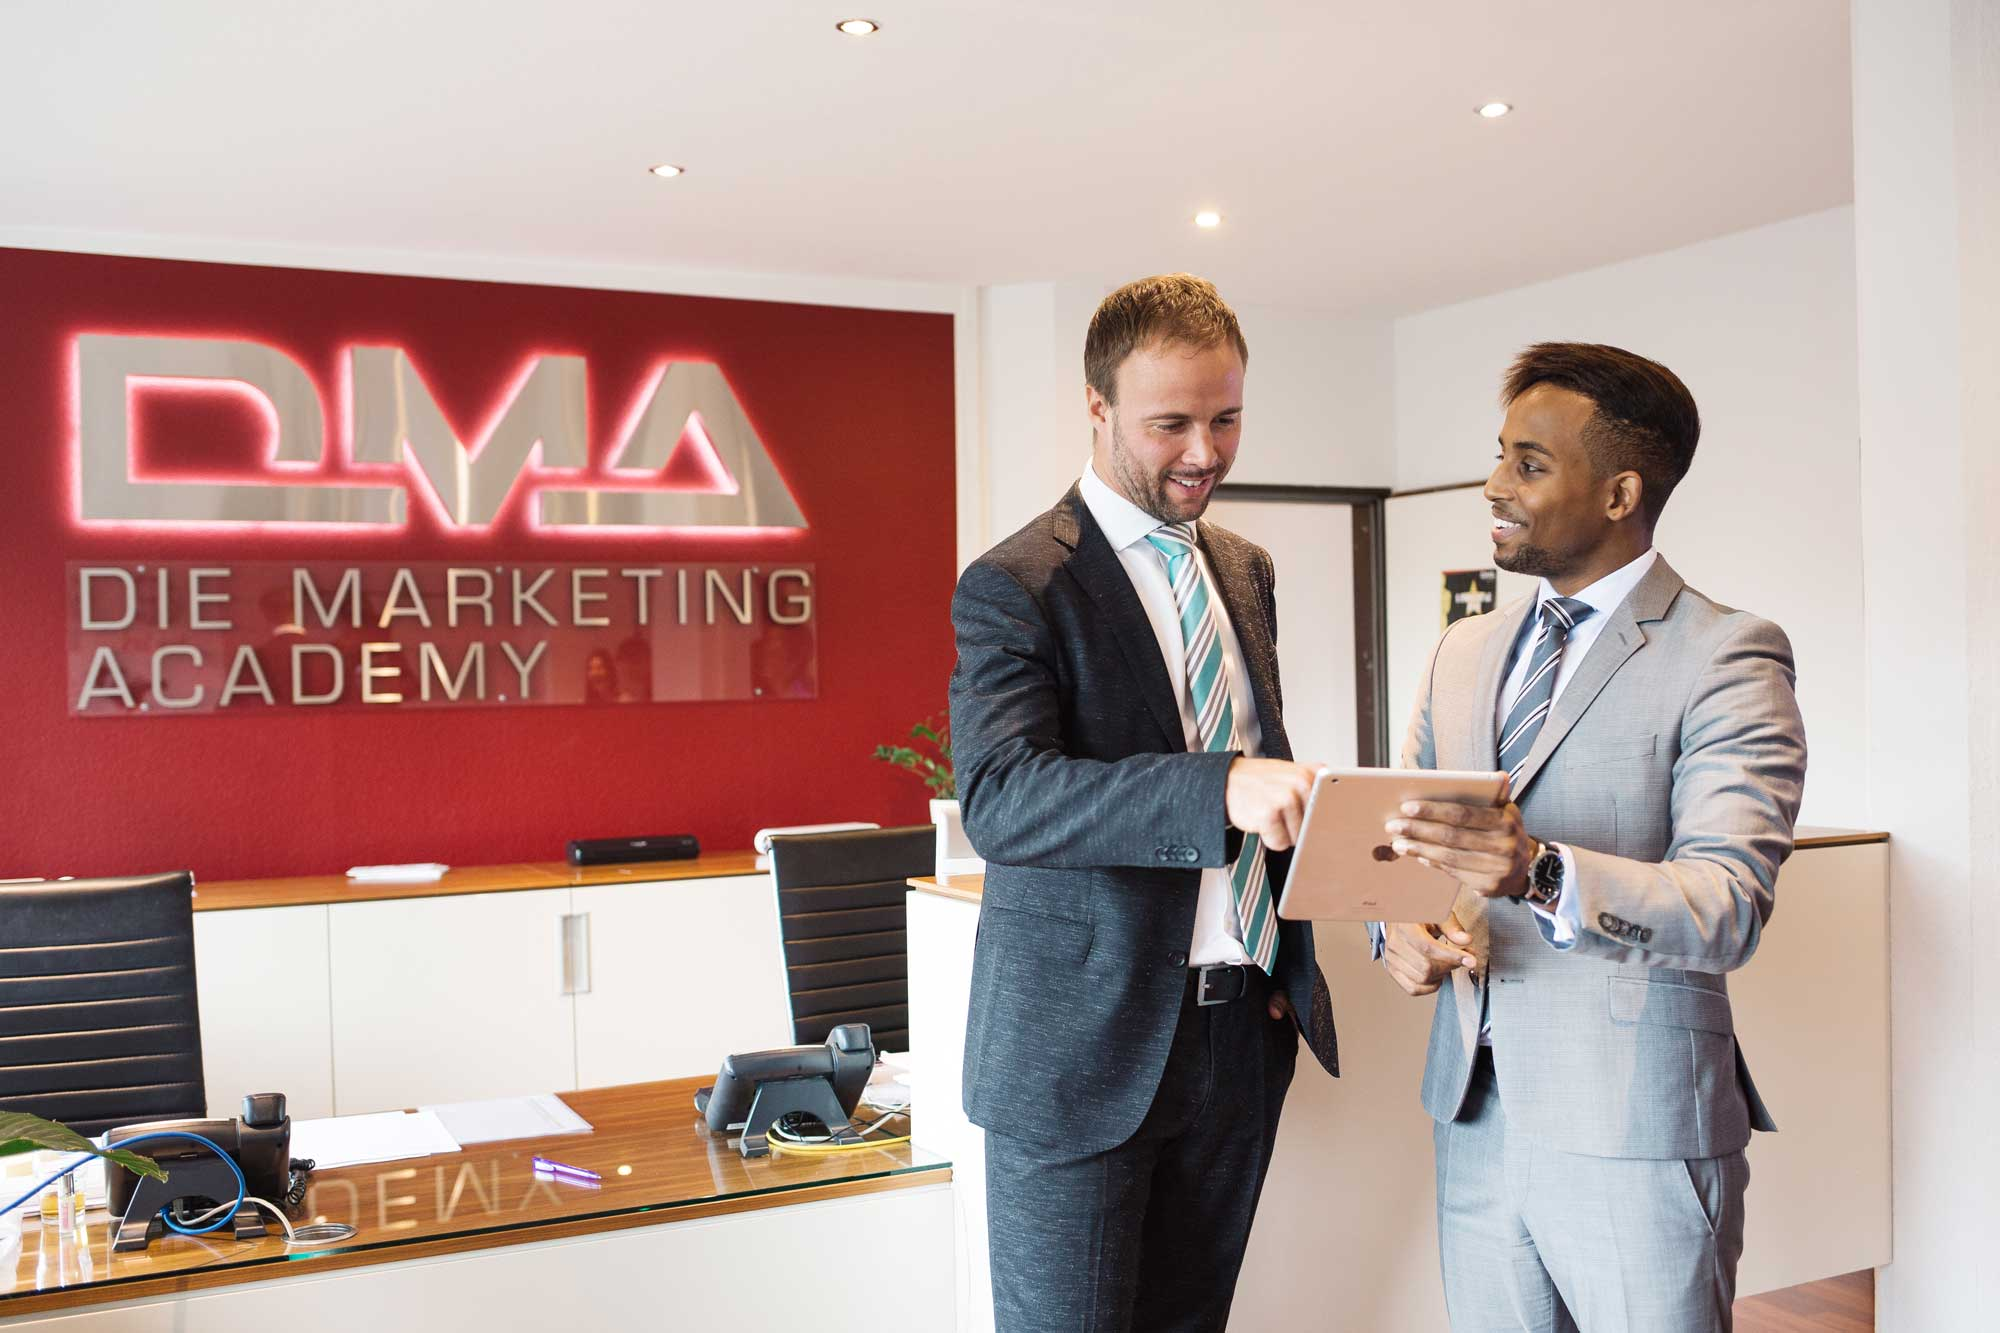 Karriere bei DMA, Die Marketing Academy